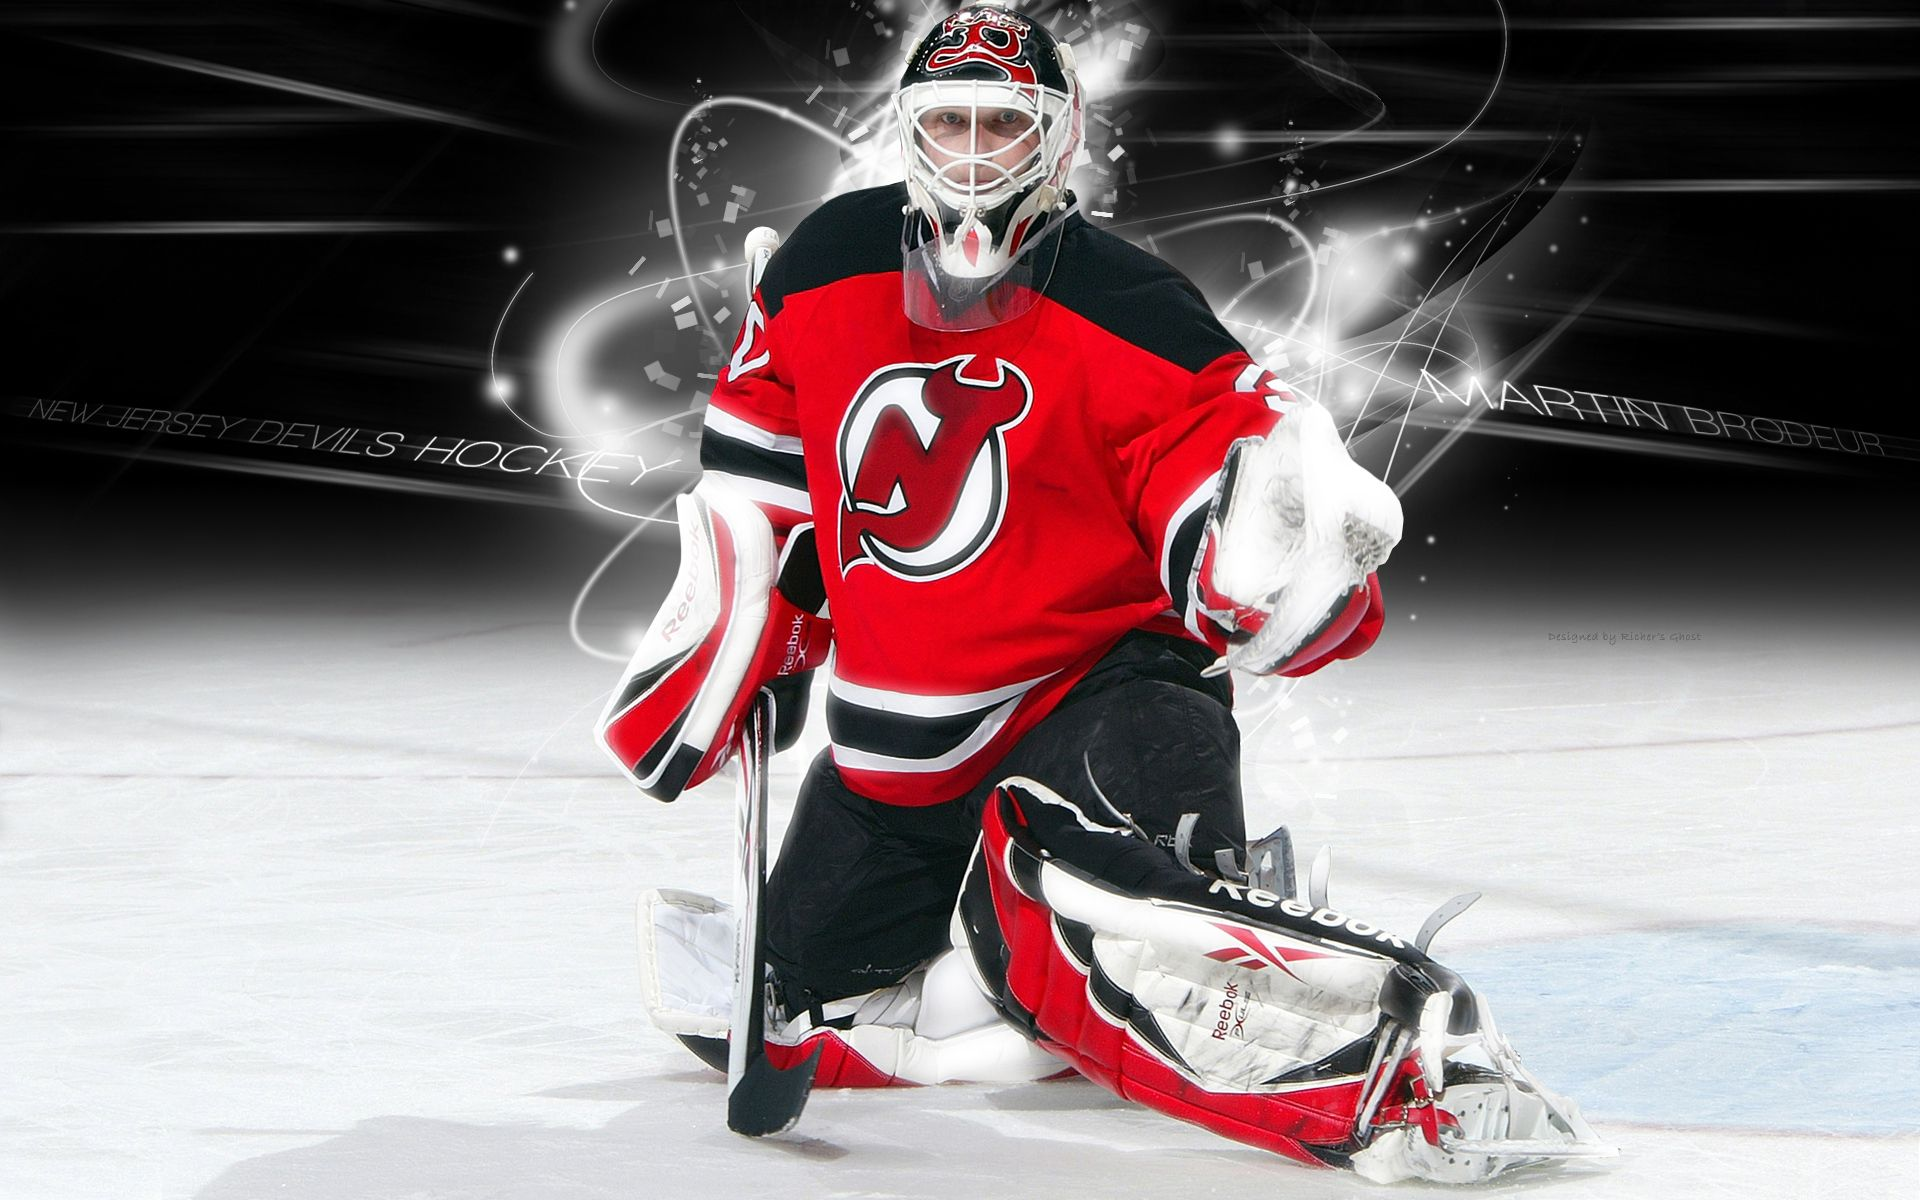 New Jersey Devils Nhl Hd Wallpaper Wallpapers Martin Brodeur